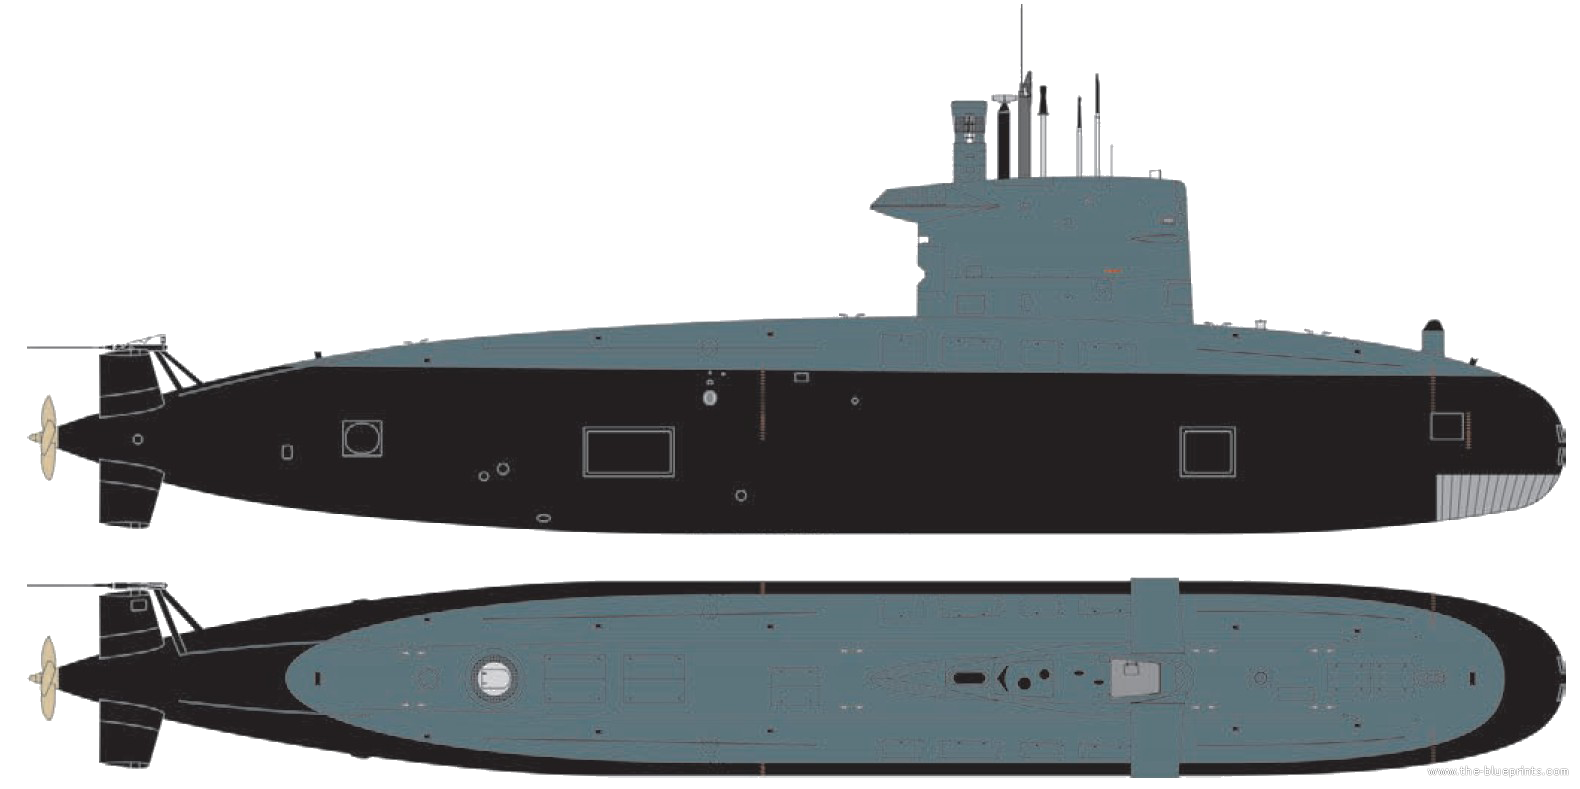 the walrus class hull above diagram from blueprints may be only slightly modified for a replacement submarine if there is some swedish design influence  [ 1580 x 789 Pixel ]